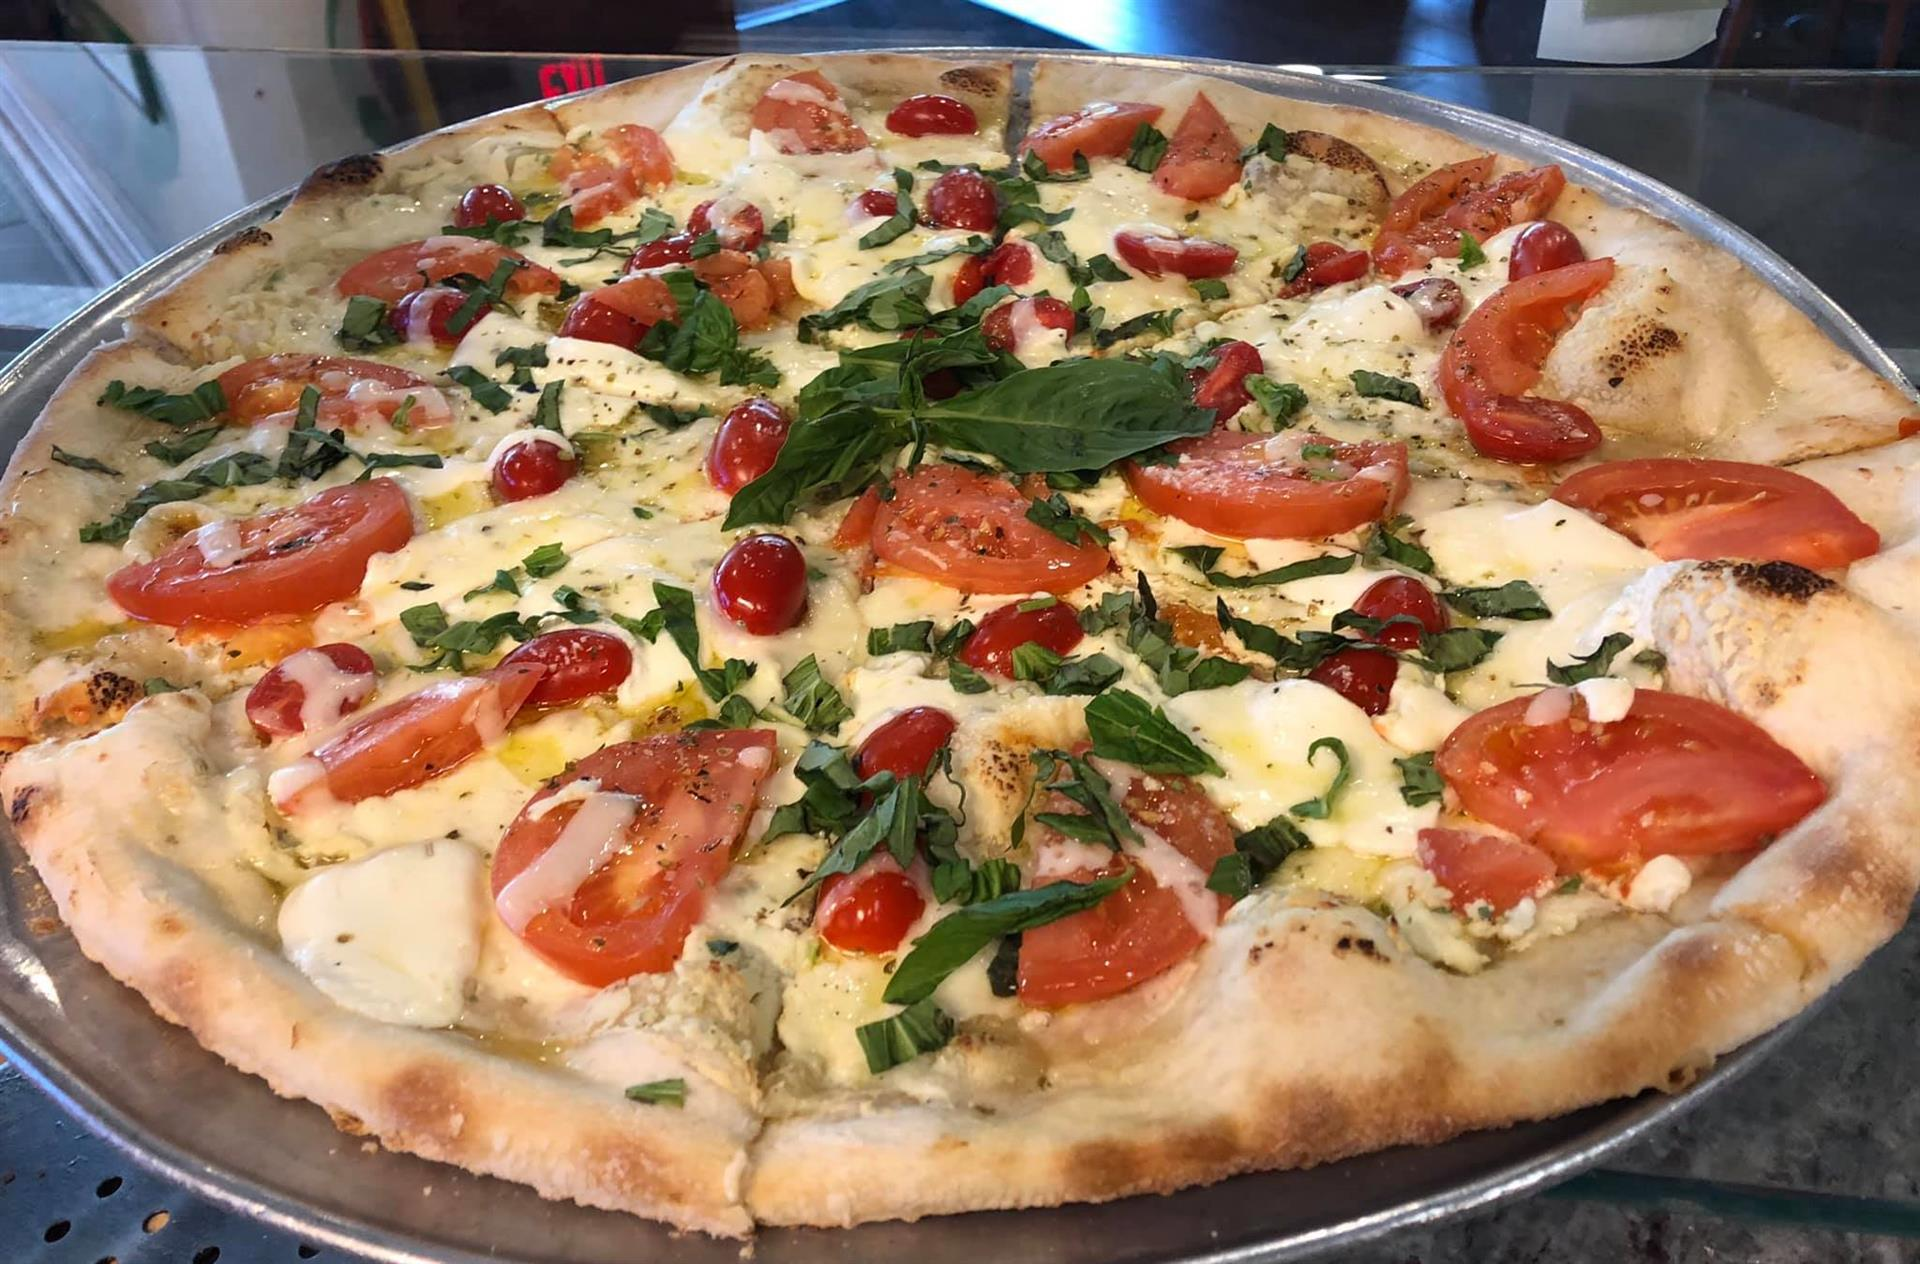 cheese pizza topped with tomatoes and spinach